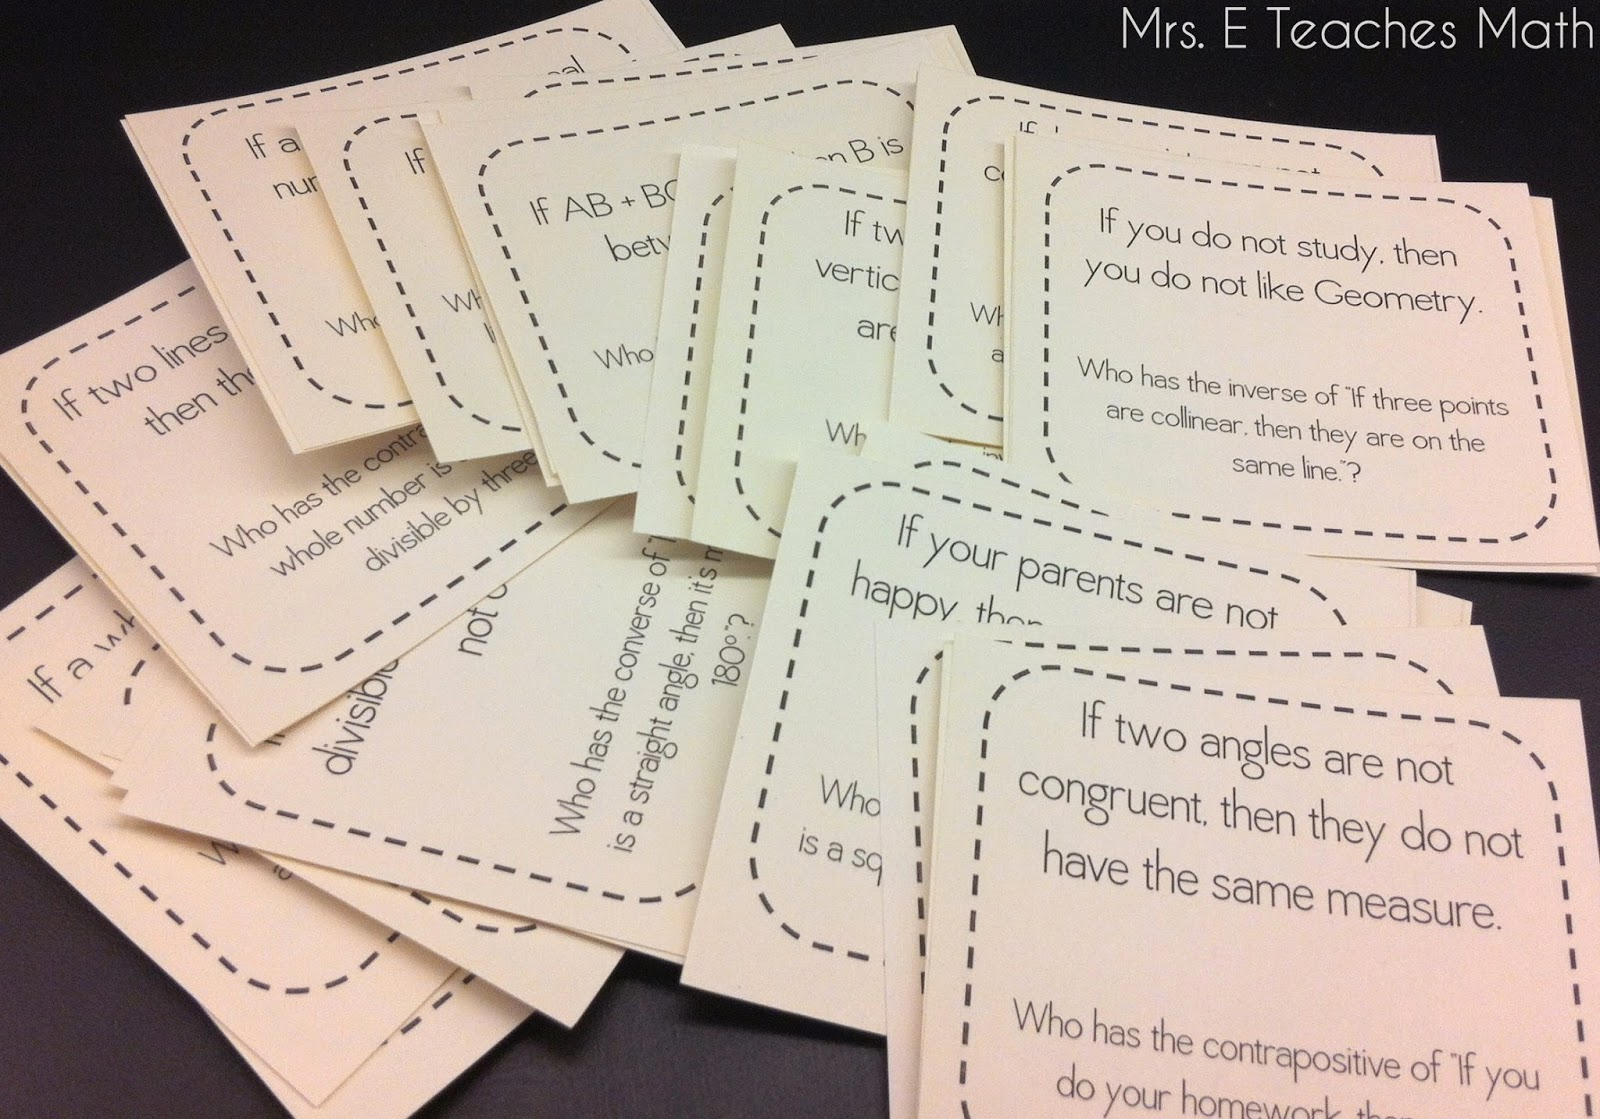 "Conditional Statements ""I Have... Who Has..."" Game   mrseteachesmath.blogspot.com"